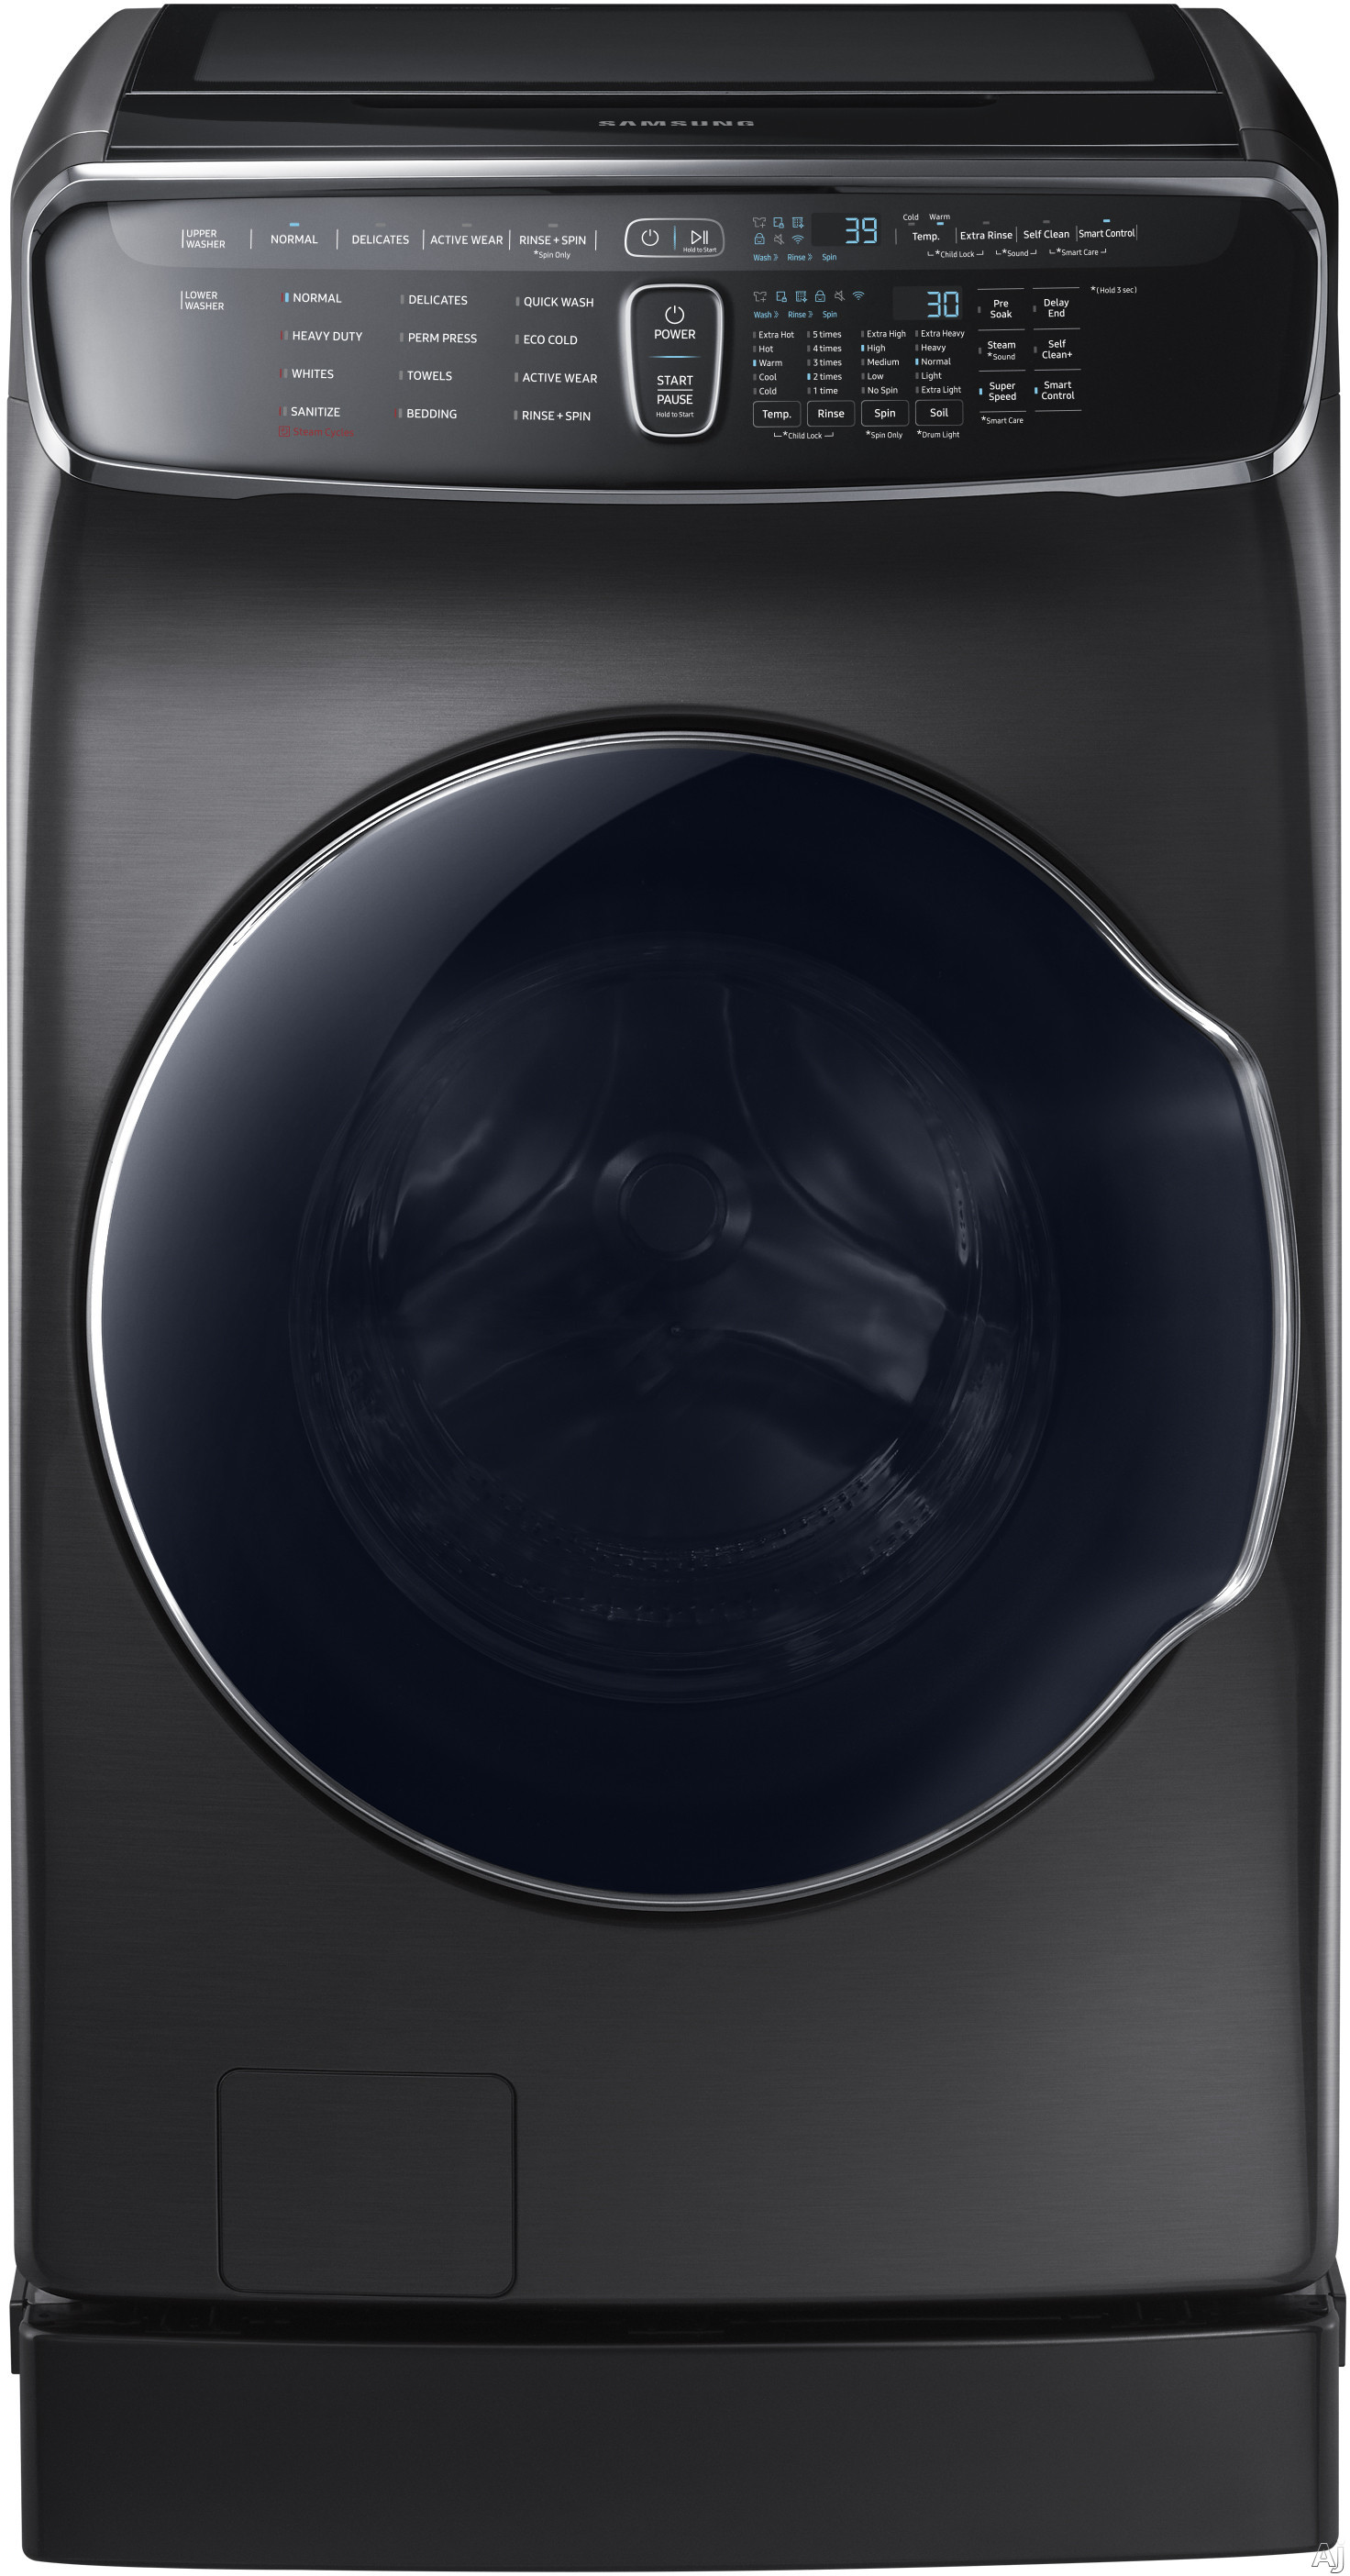 "Samsung WV60M9900A 27 Inch FlexWashâ""¢ Washer with Steam, Super Speed, Wi-Fi Connectivity, Smart Care, 13 Wash Cycles, Self Clean+, PowerFoamâ""¢, Sanitize Cycle, 3-Tray Dispenser, Vibration Reduction Plusâ""¢ and 6.0 cu. ft. Capacity WV60M9900A"